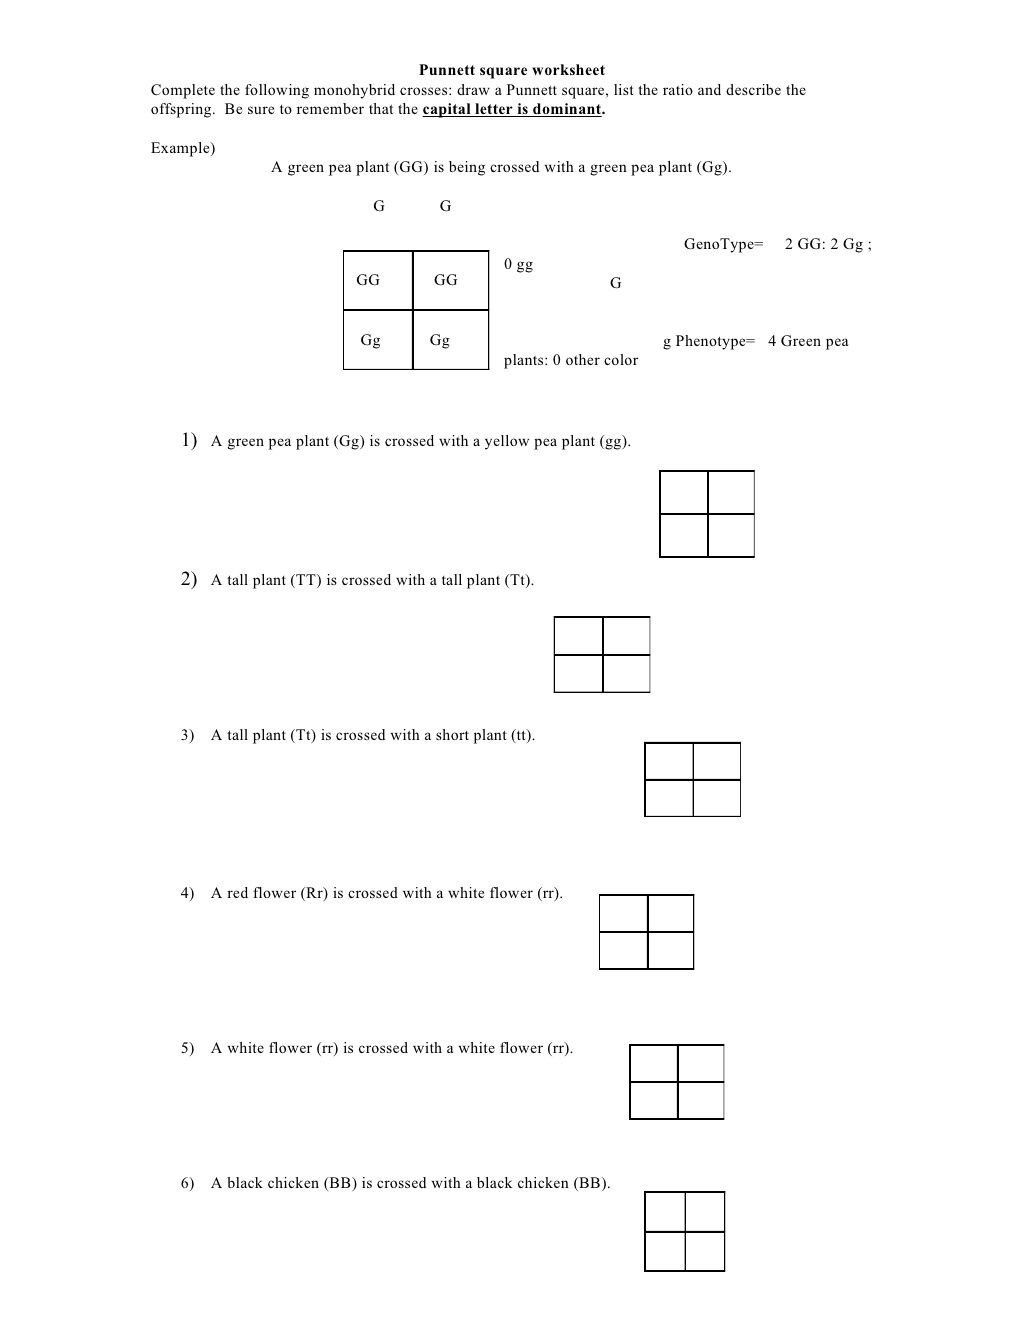 Punnett Square Practice Problems Worksheet Punnett Square